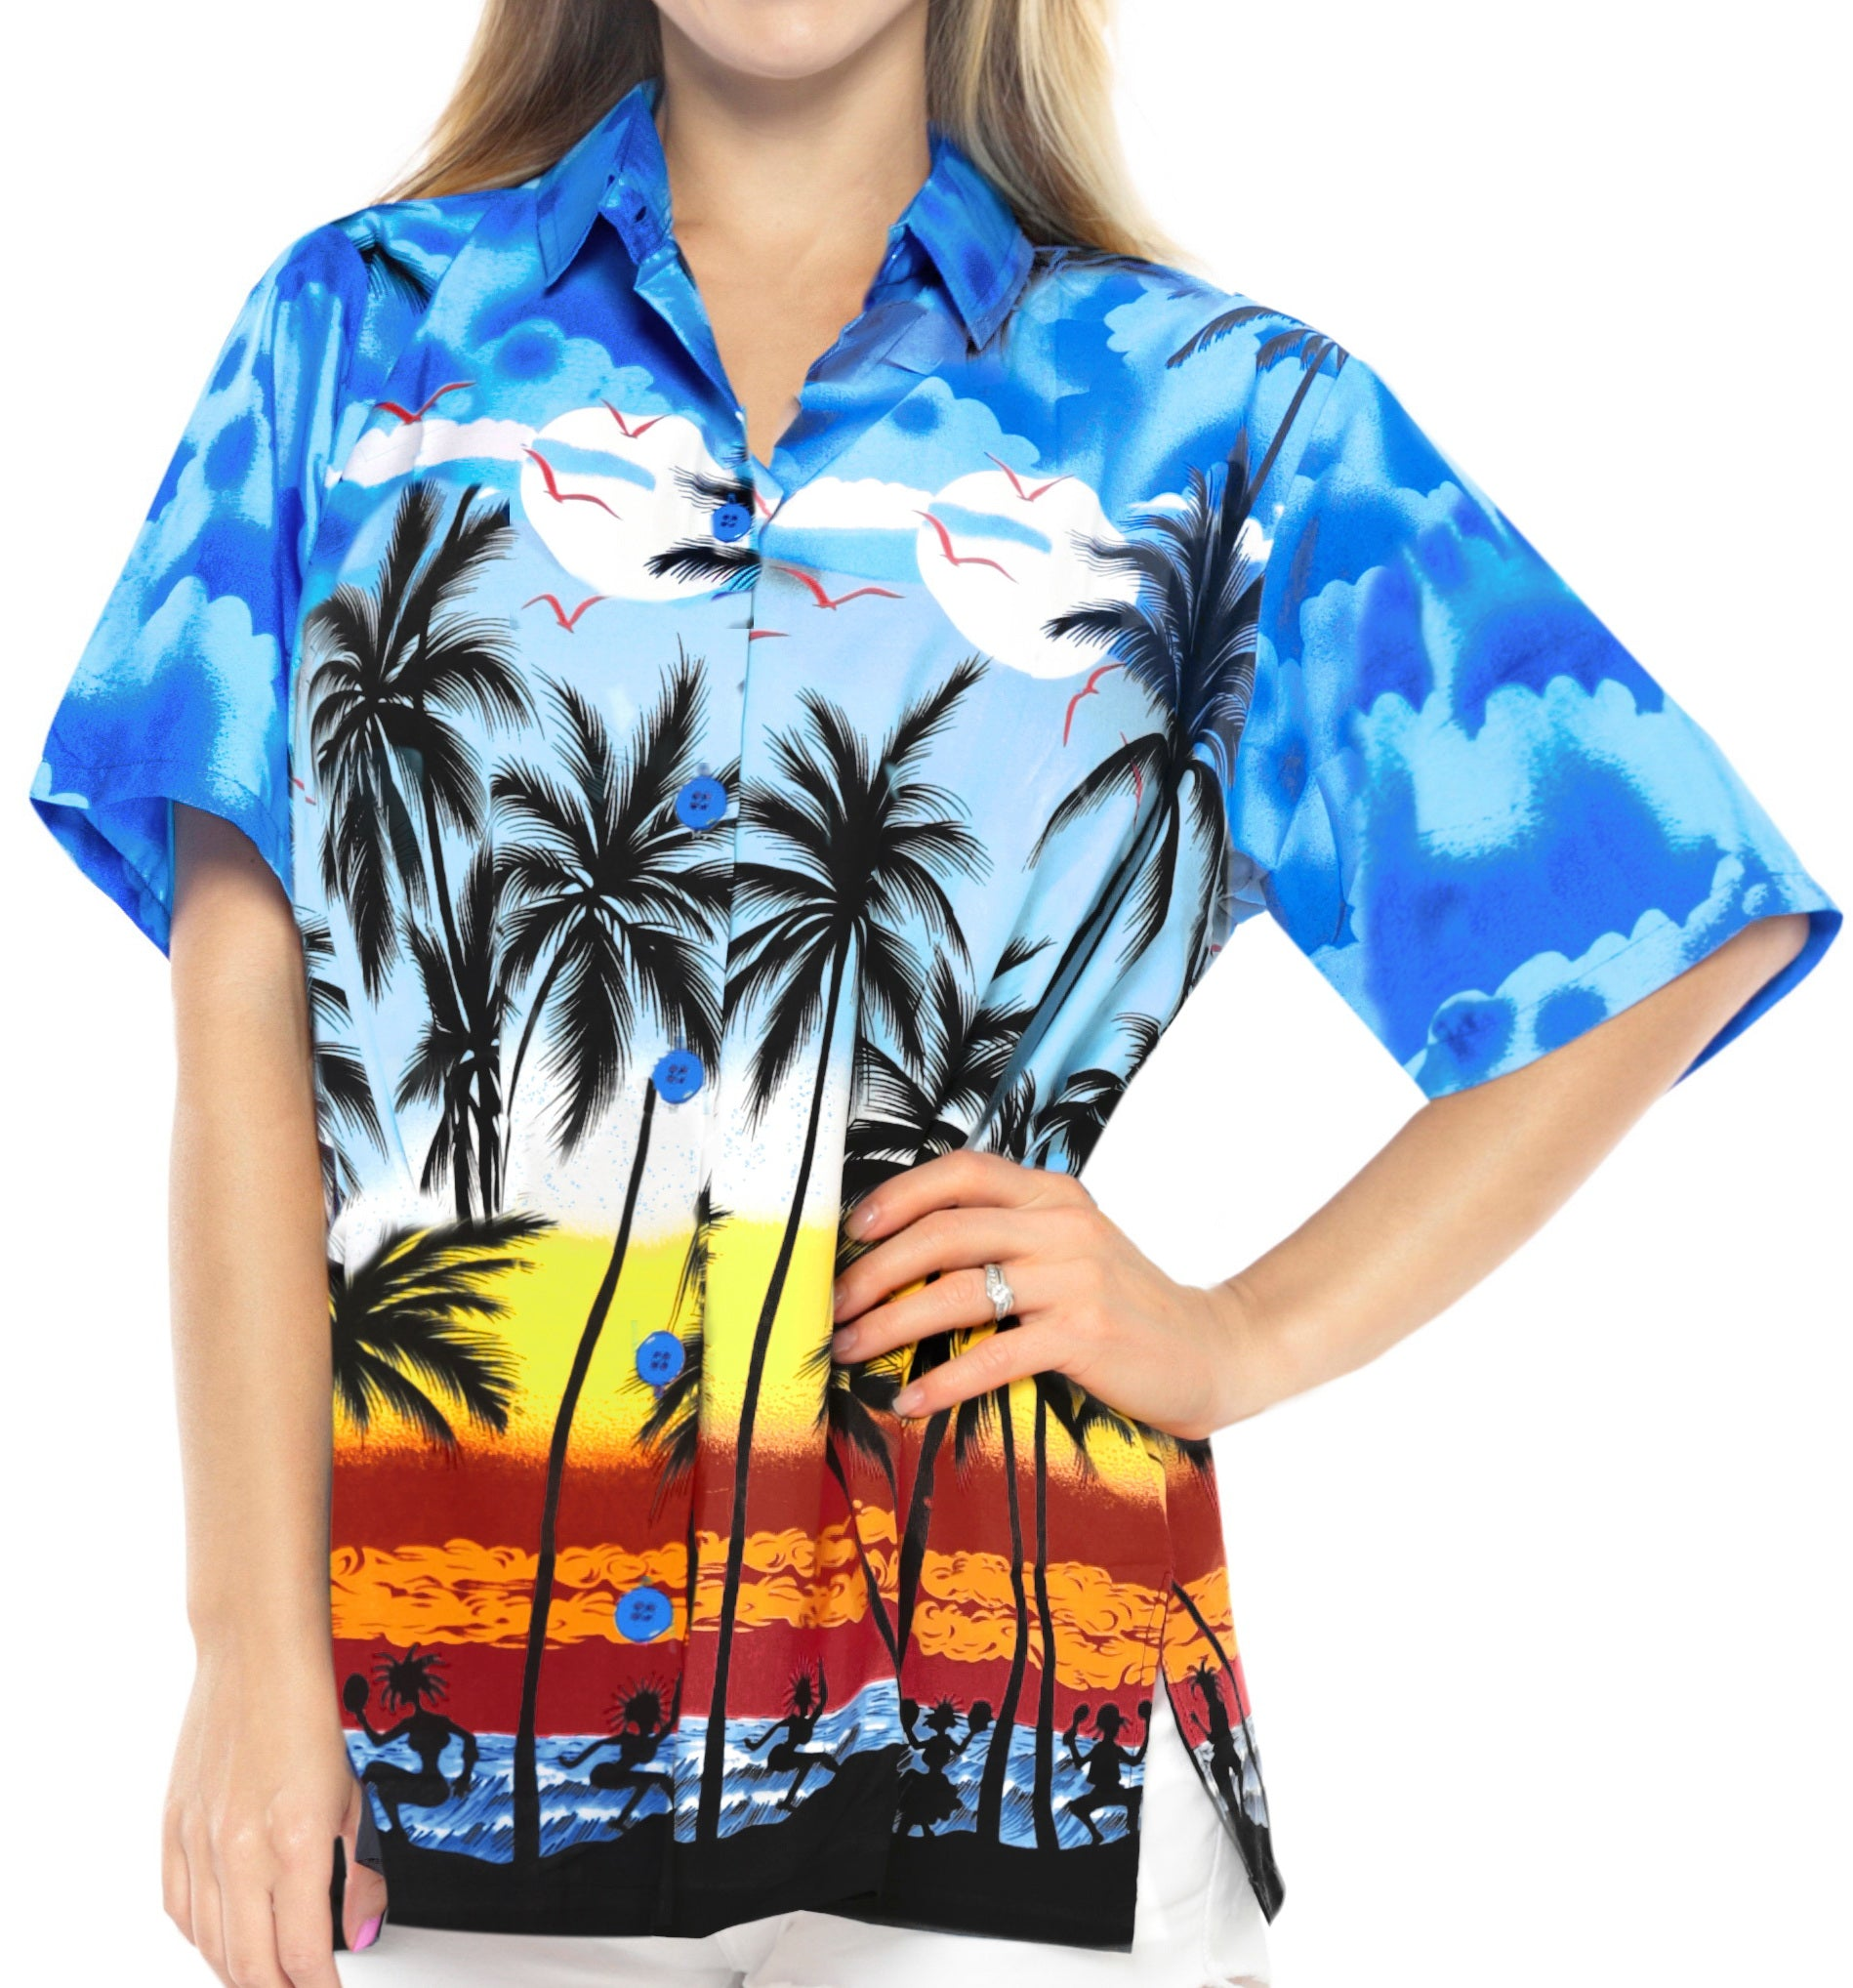 4538dcf69d LA LEELA Women Hawaiian Shirt Beach Blouses Tank Top Aloha Boho Casual  Holiday Button Up - w959